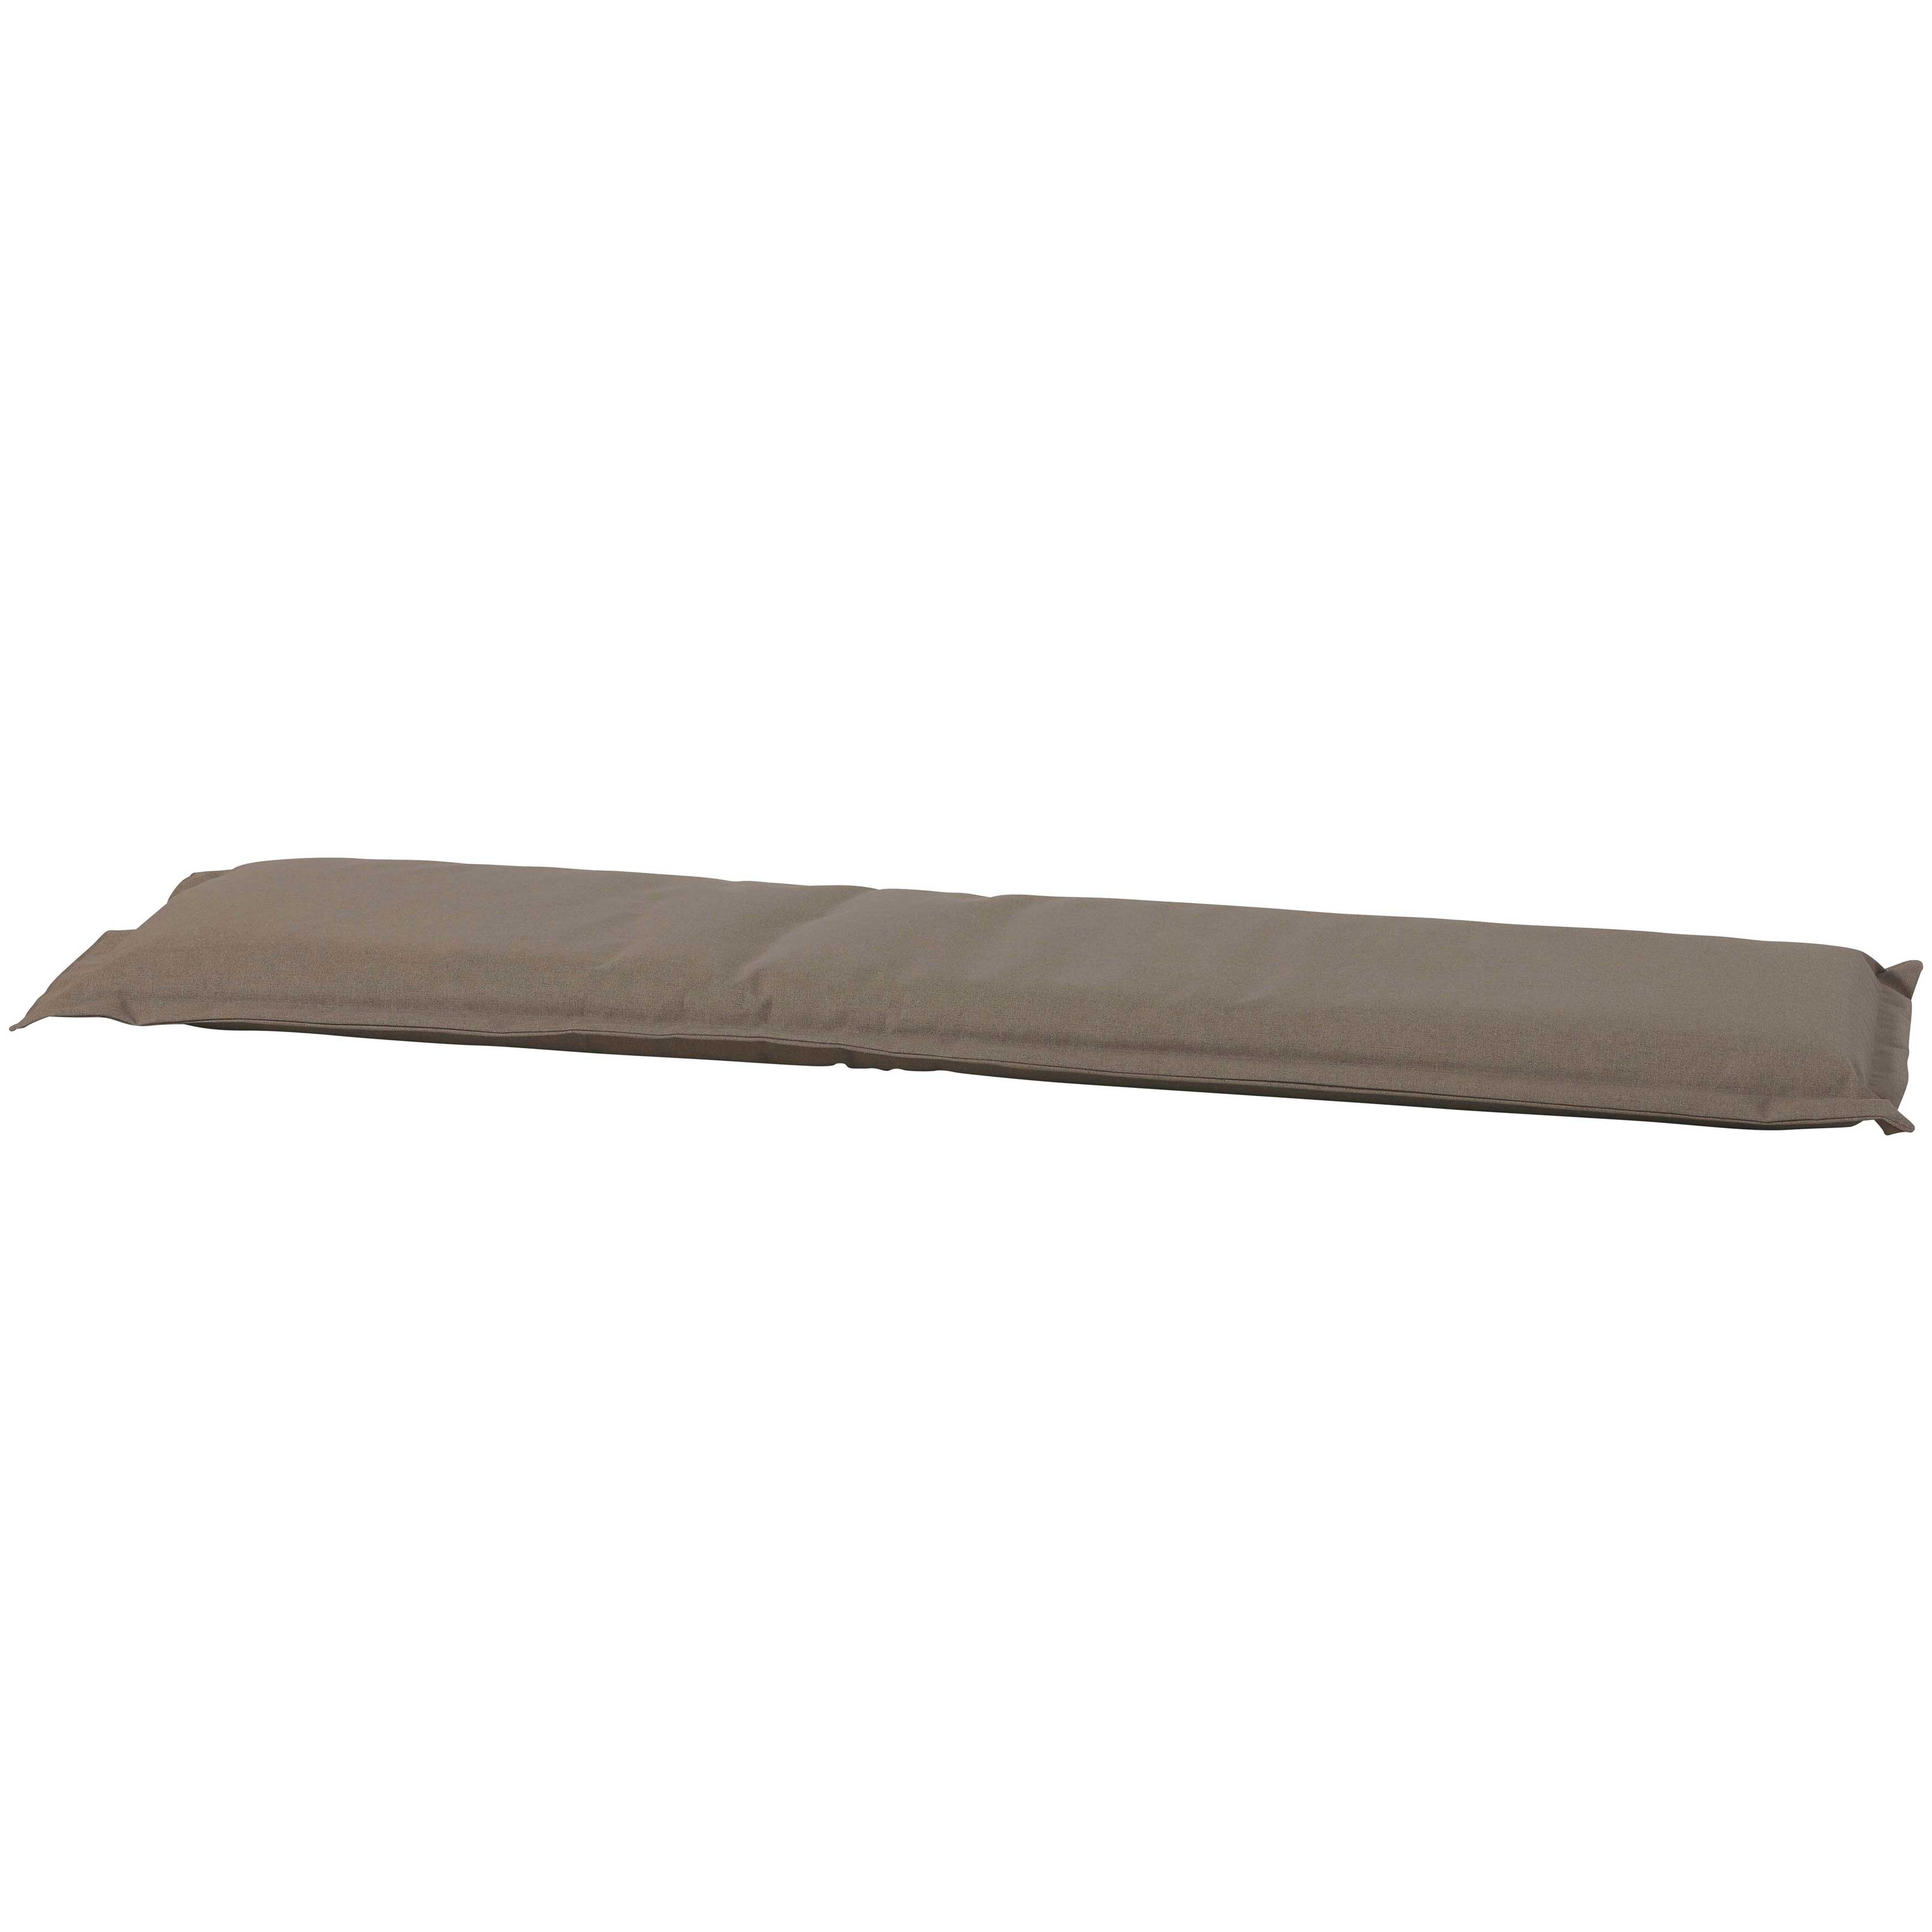 Auflage Bank 120cm mit Volant - Outdoor Oxford taupe